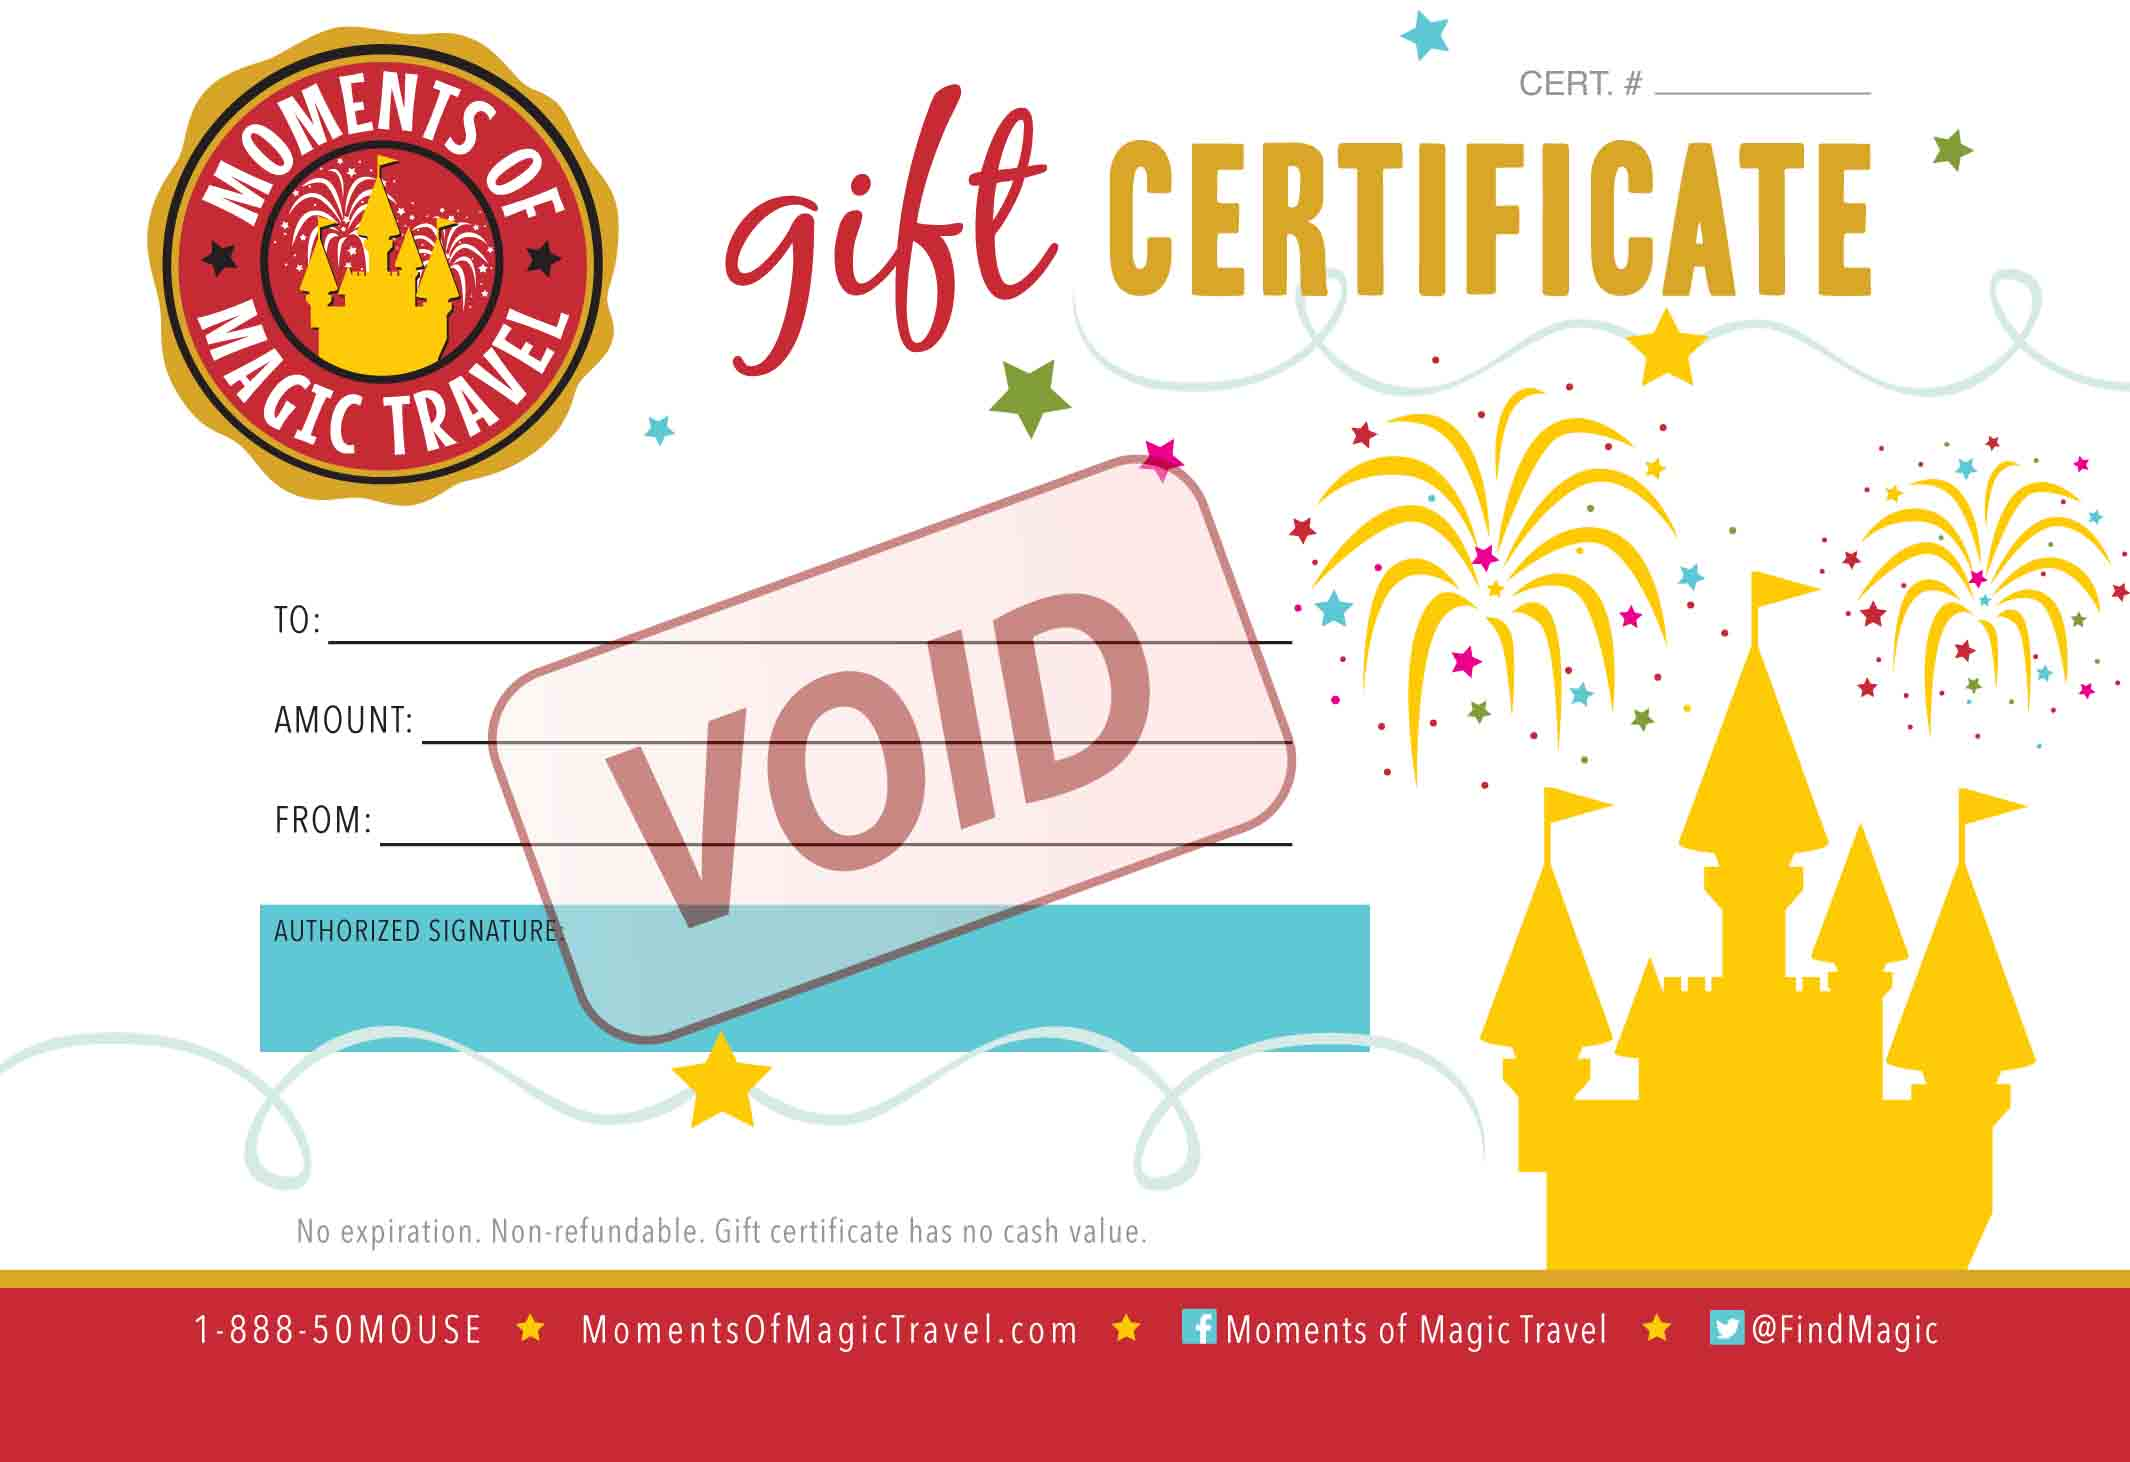 gift certificate offer cyber monday deal moments of magic giftcertificatesample